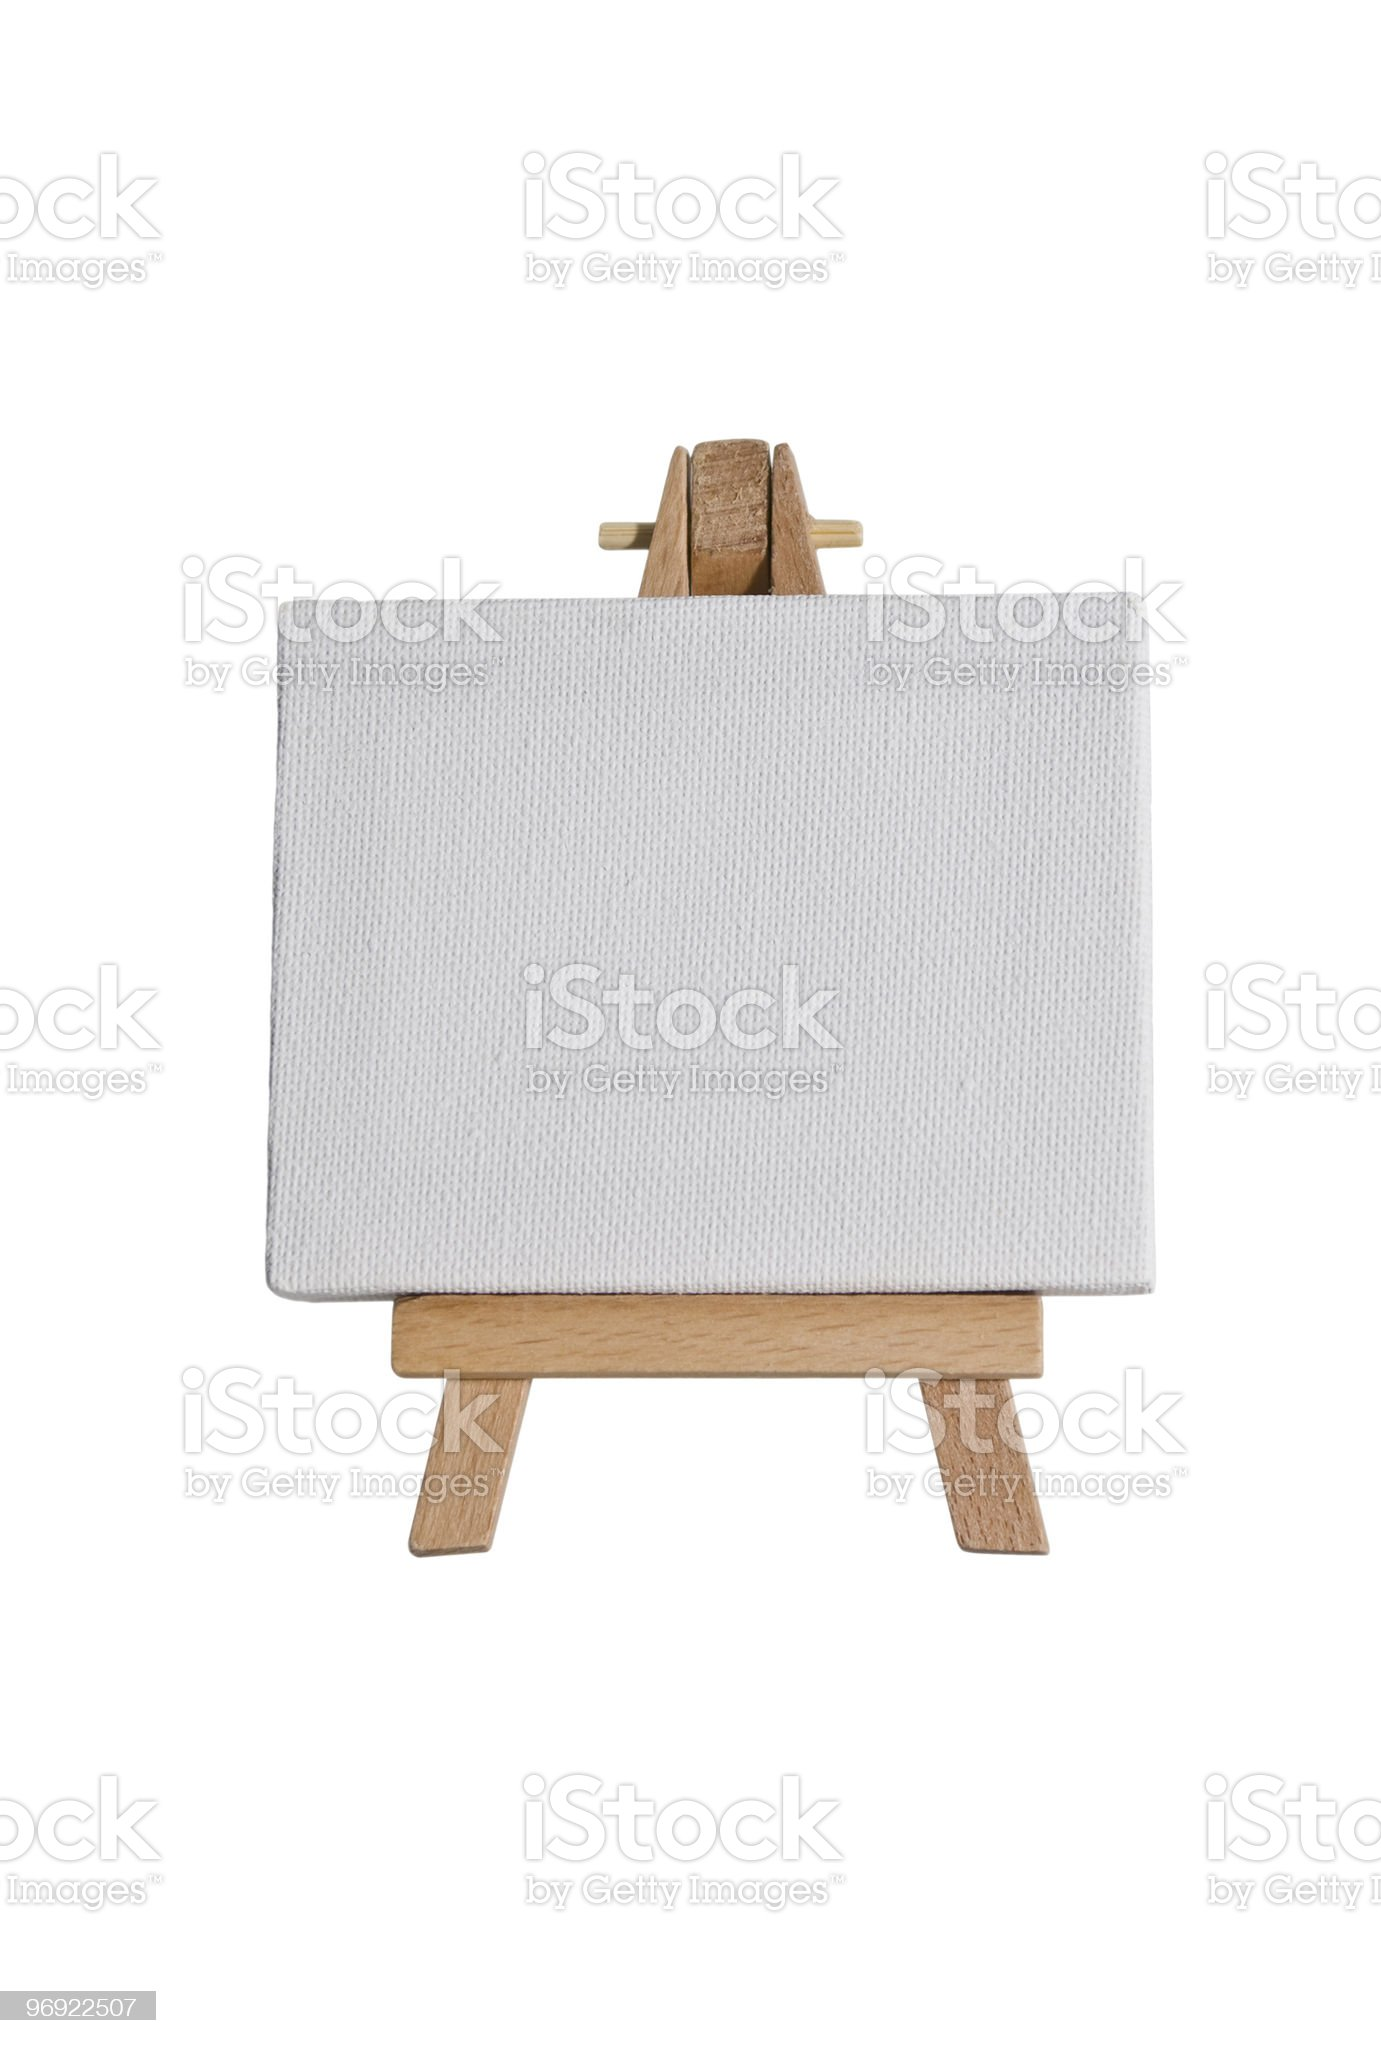 customizable canvas royalty-free stock photo